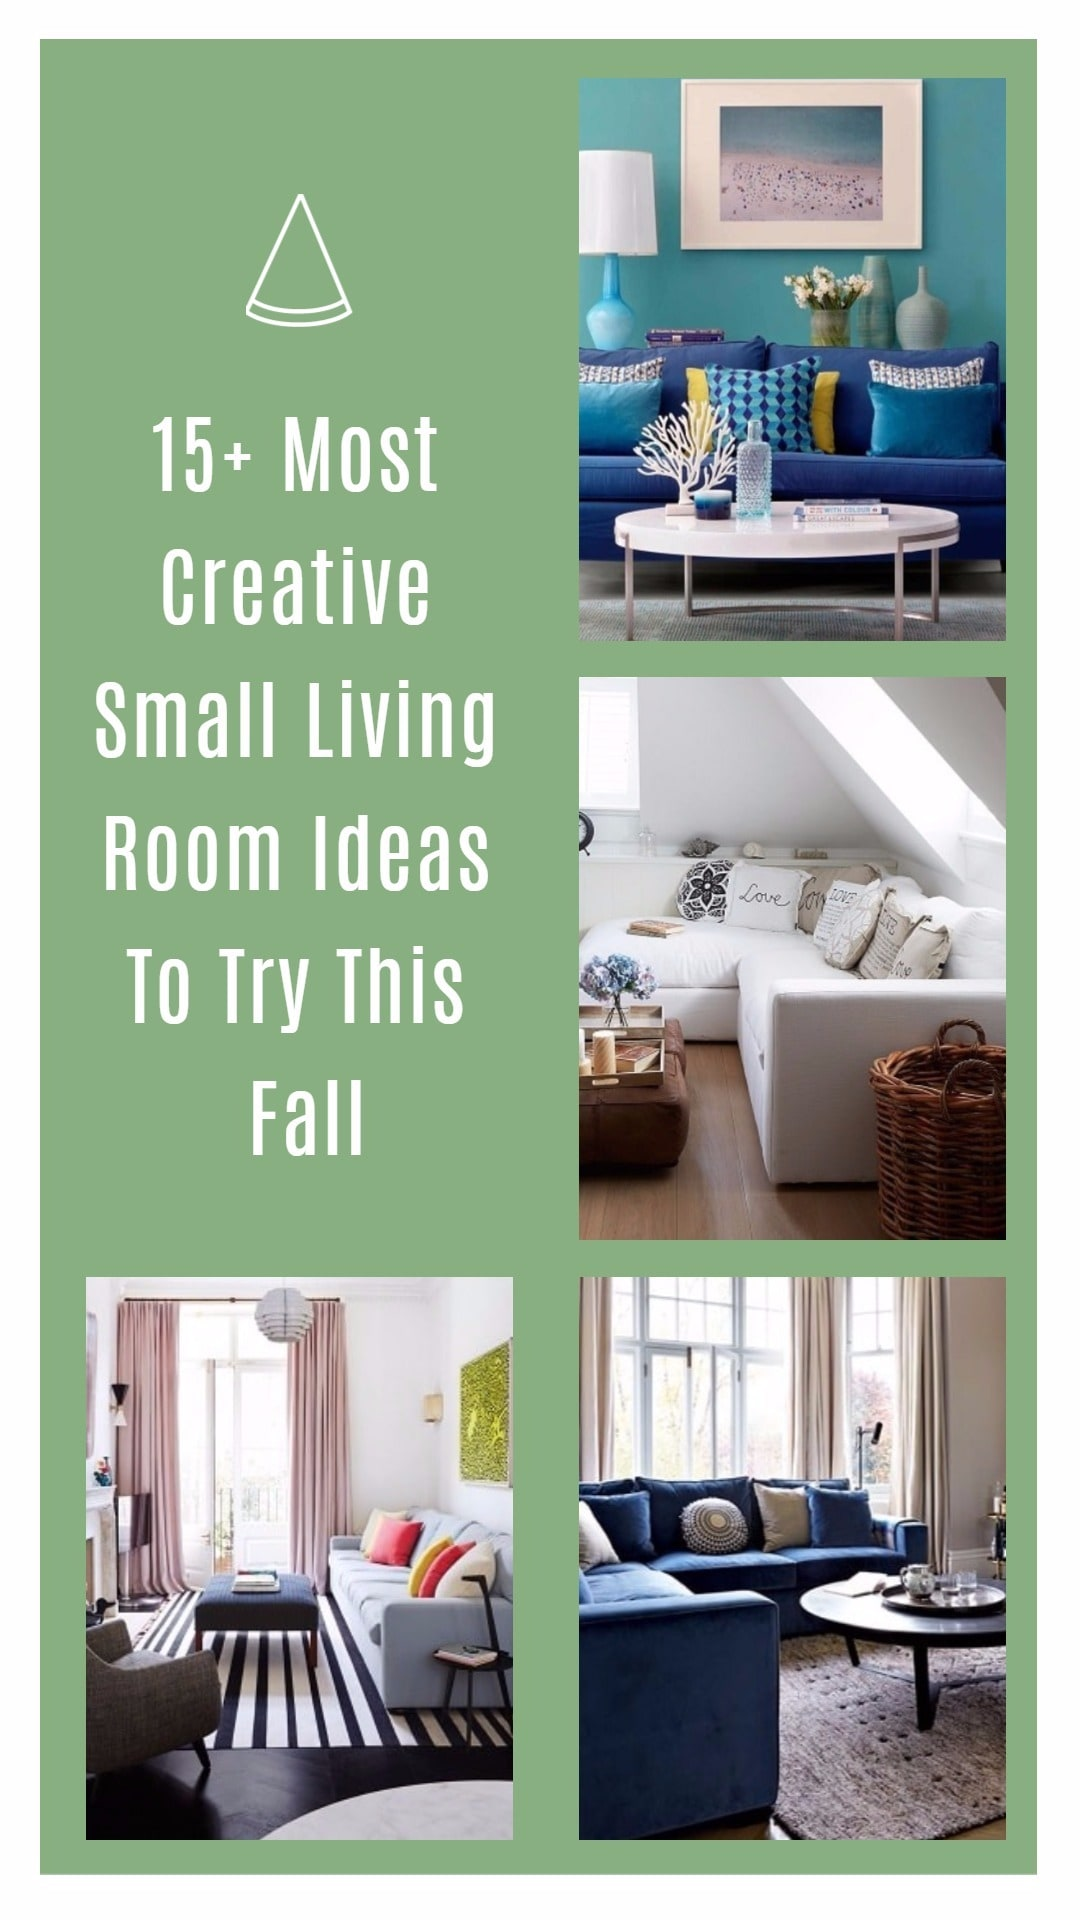 15+ Most Creative Small Living Room Ideas To Try This Fall